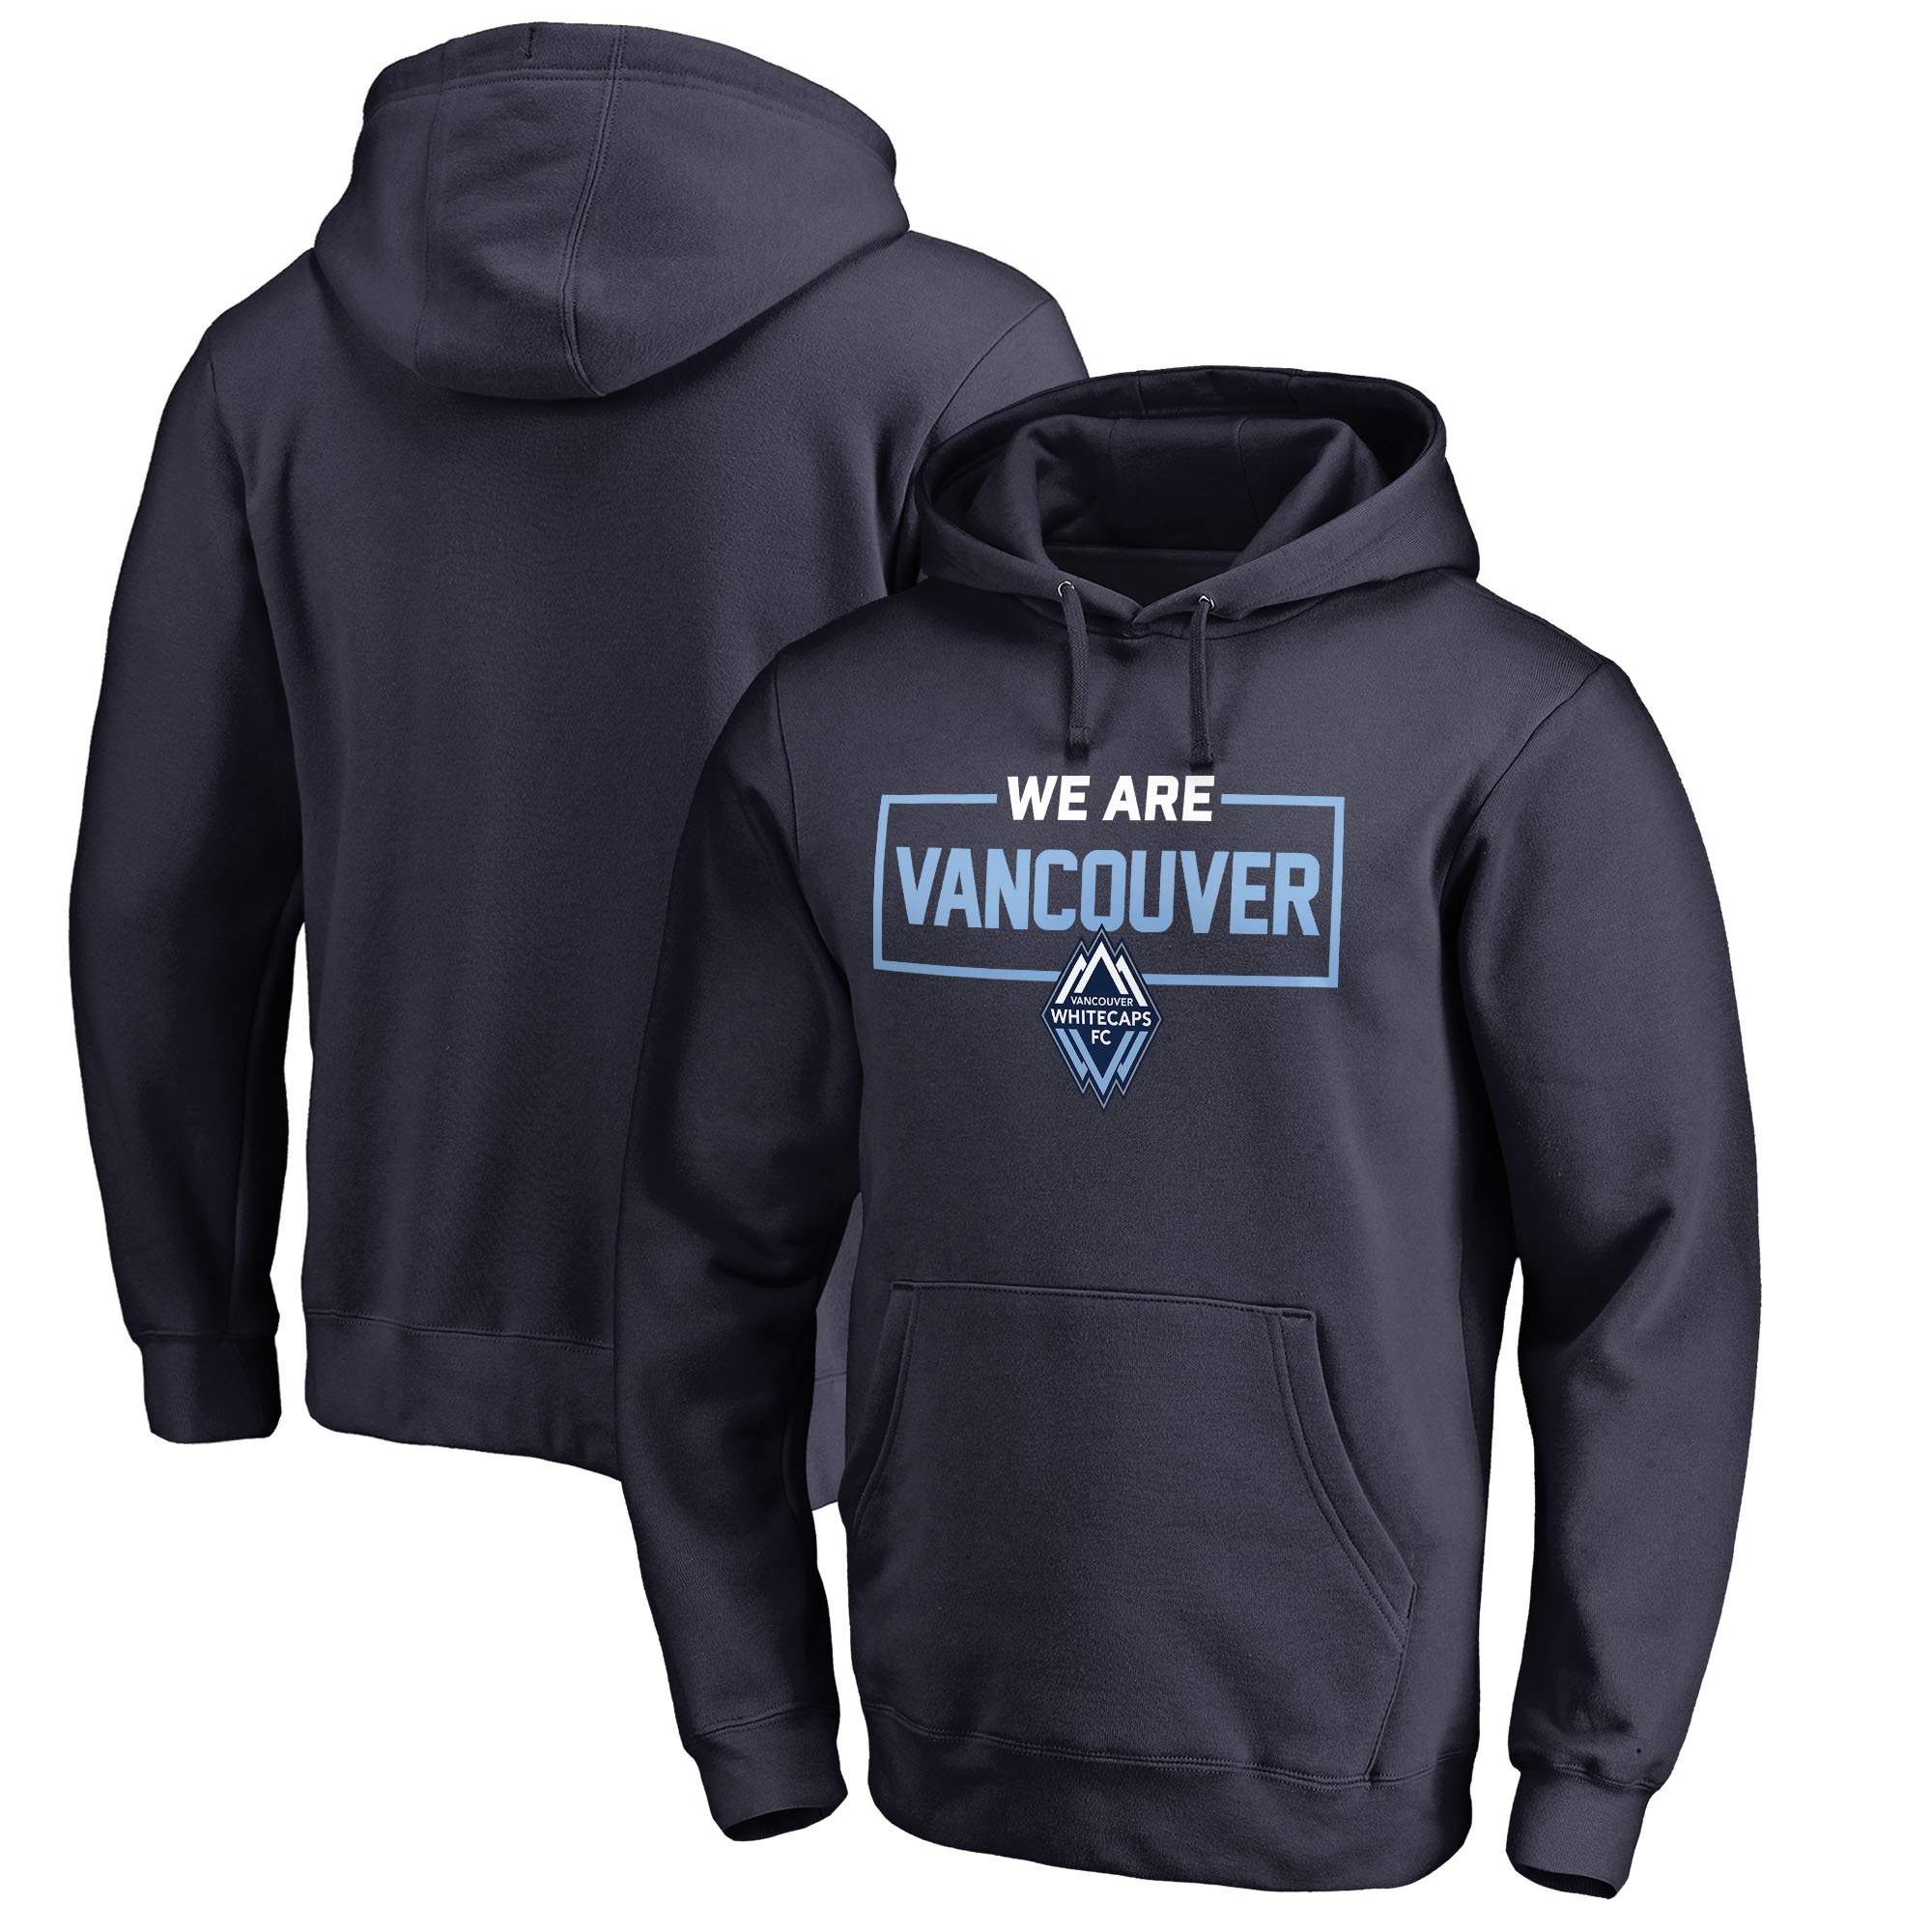 Vancouver Whitecaps FC Fanatics Branded We Are Pullover Hoodie - Navy